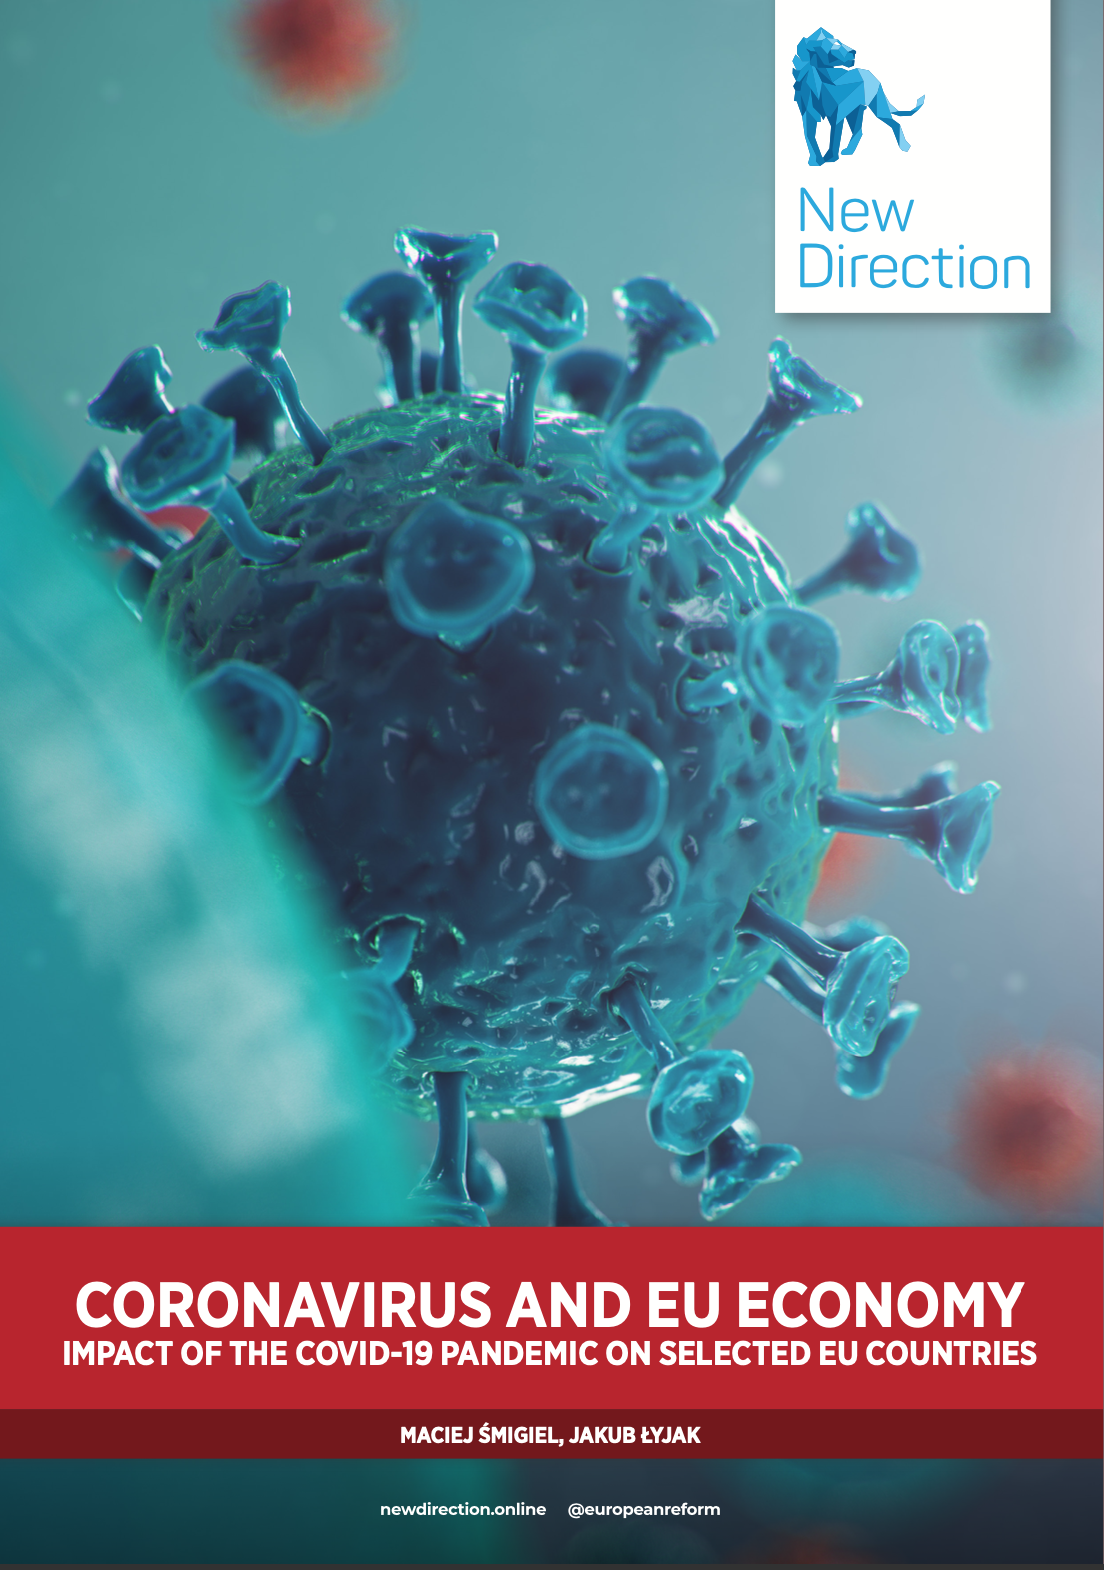 CORONAVIRUS AND EU ECONOMY IMPACT OF THE COVID-19 PANDEMIC ON SELECTED EU COUNTRIES